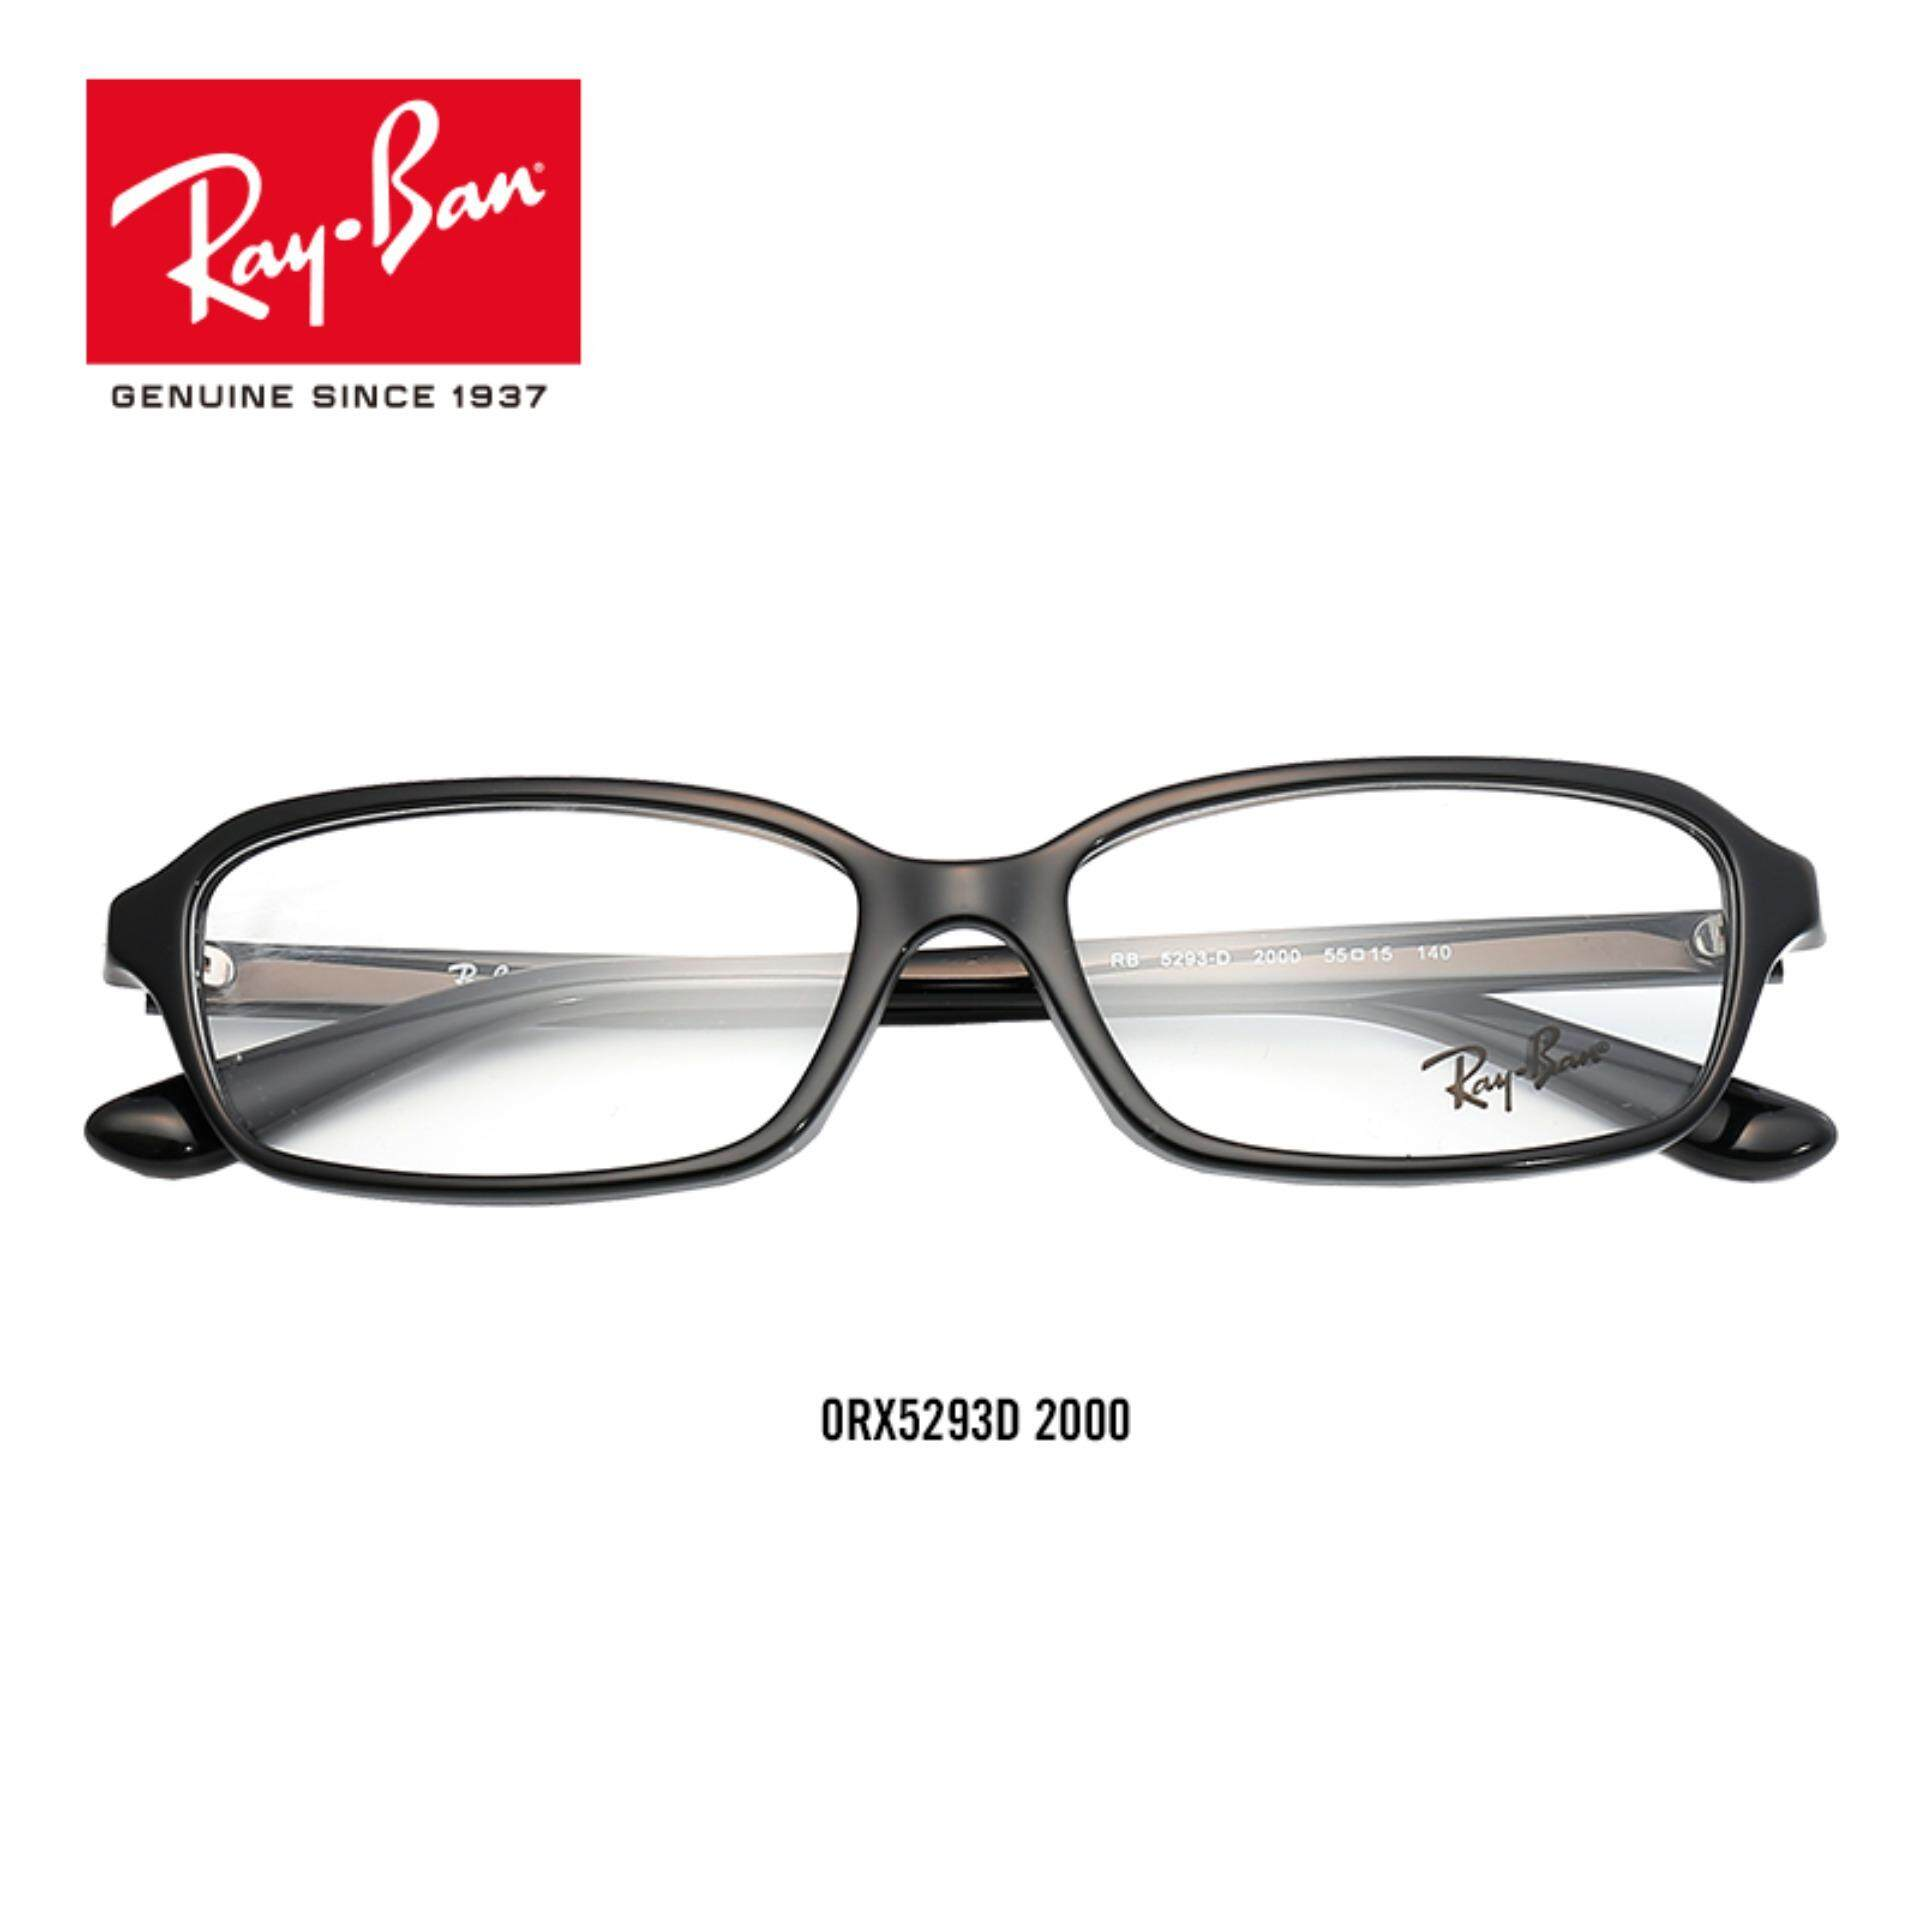 6dfb802ba90d Ray Ban Products for the Best Price in Malaysia